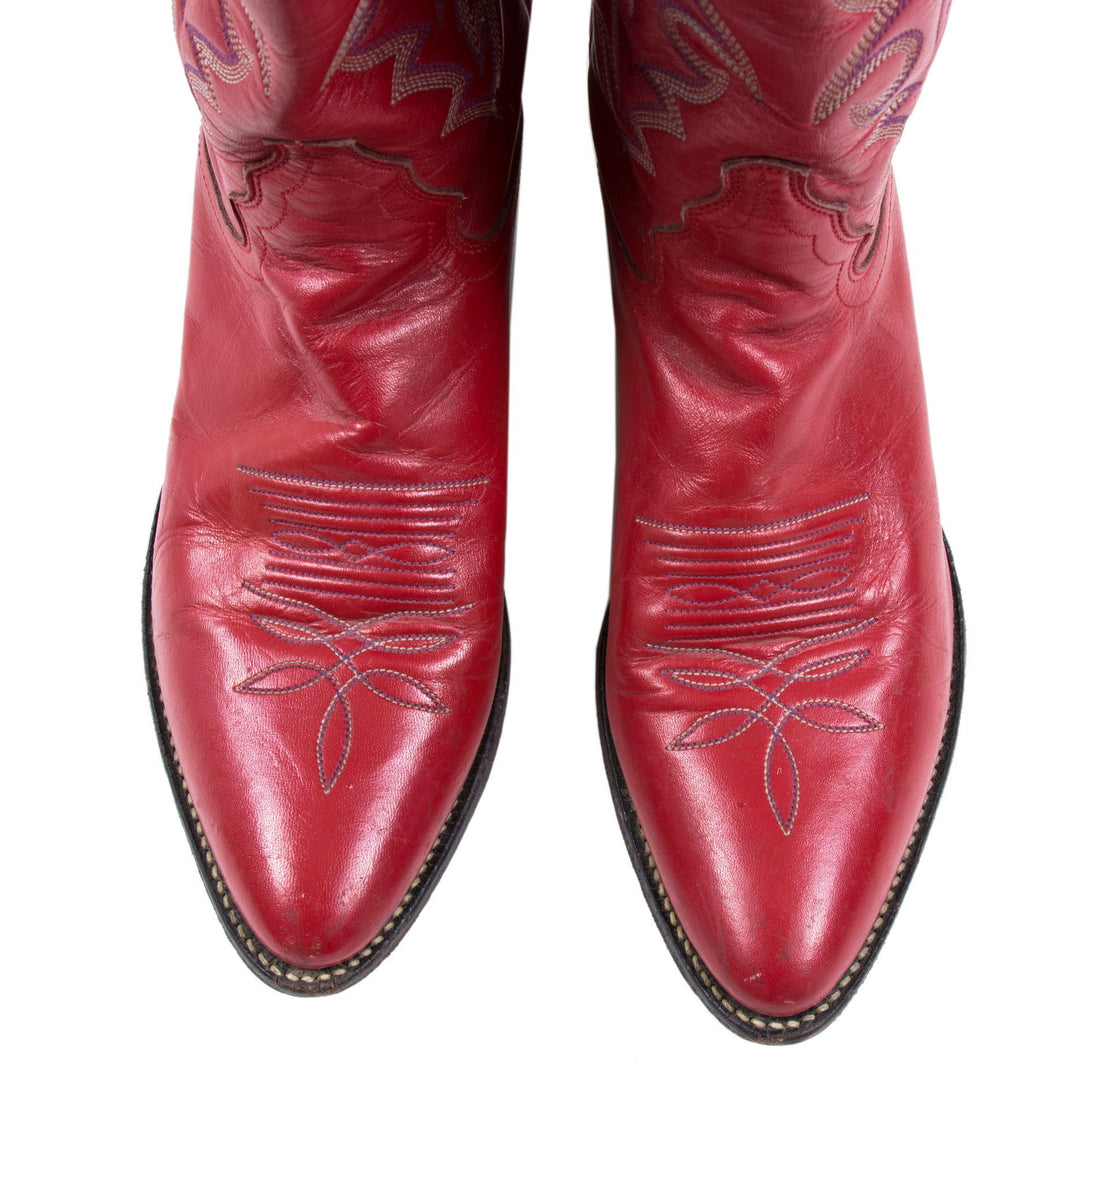 Vintage Justin Cowboy Boots - Vintage - Iron and Resin